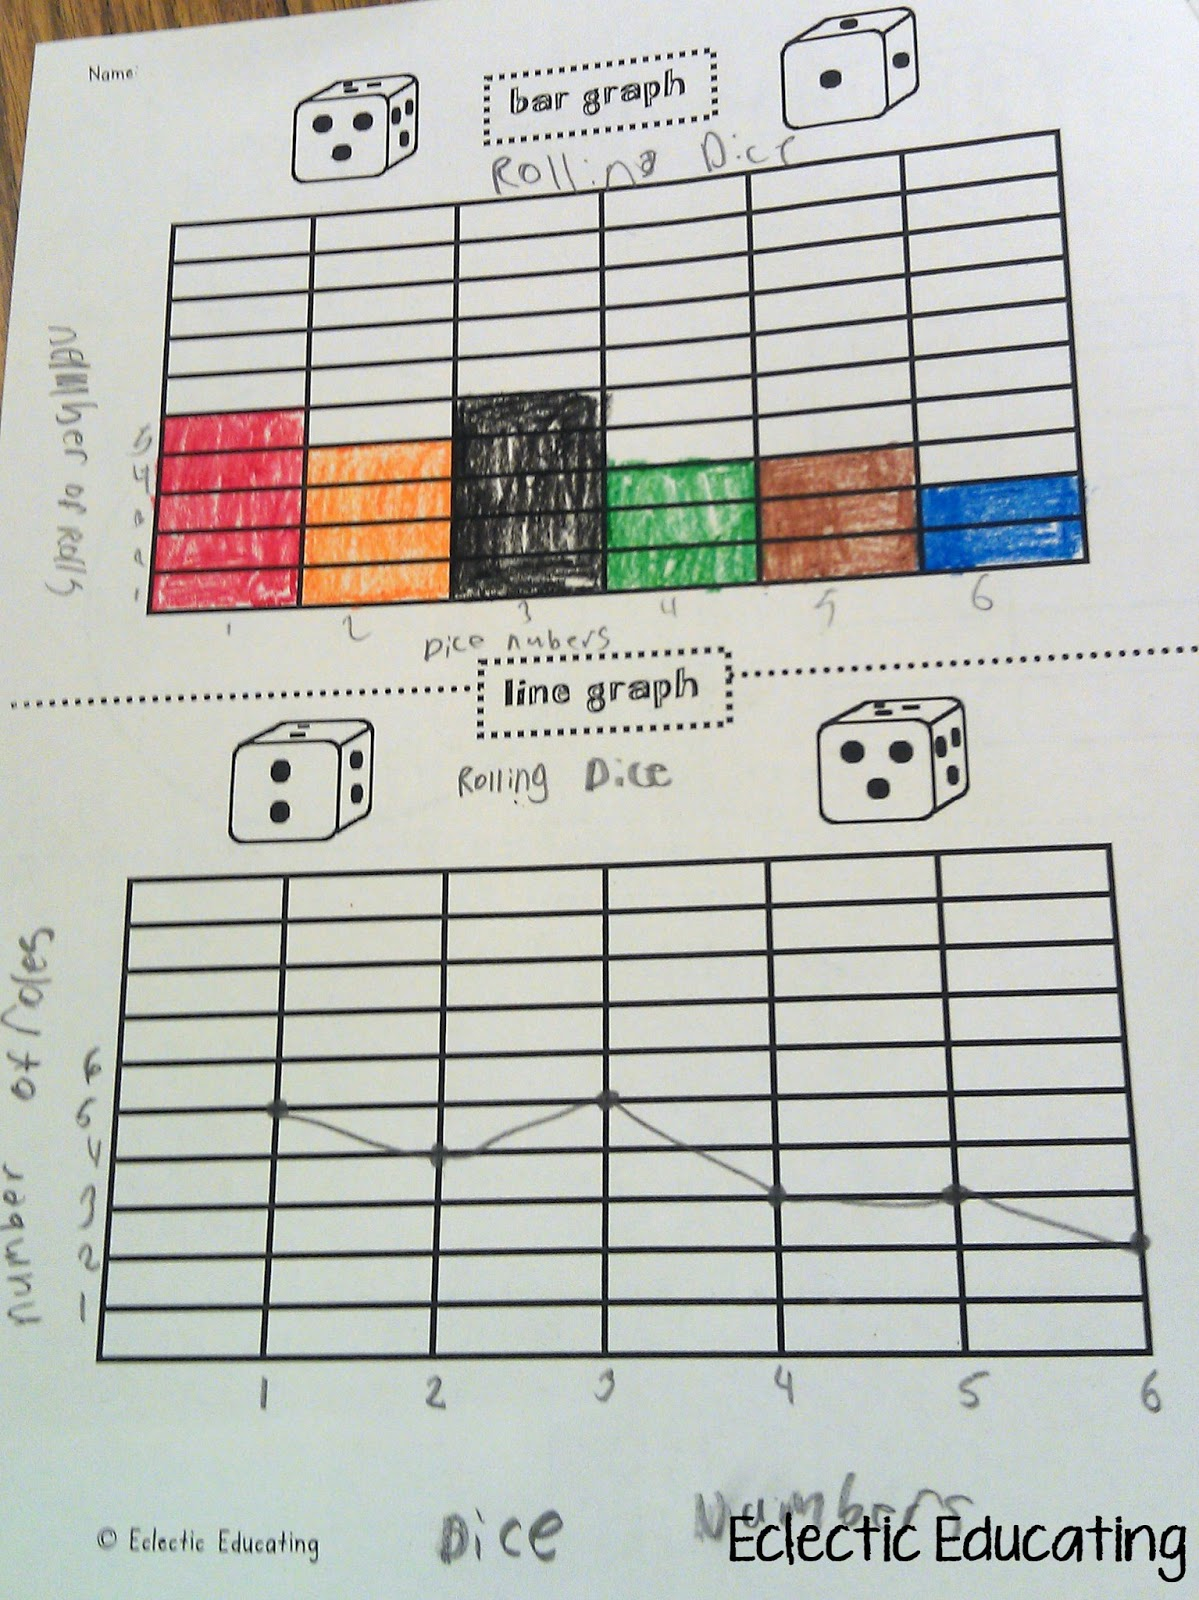 Eclectic Educating Graphing With Dice